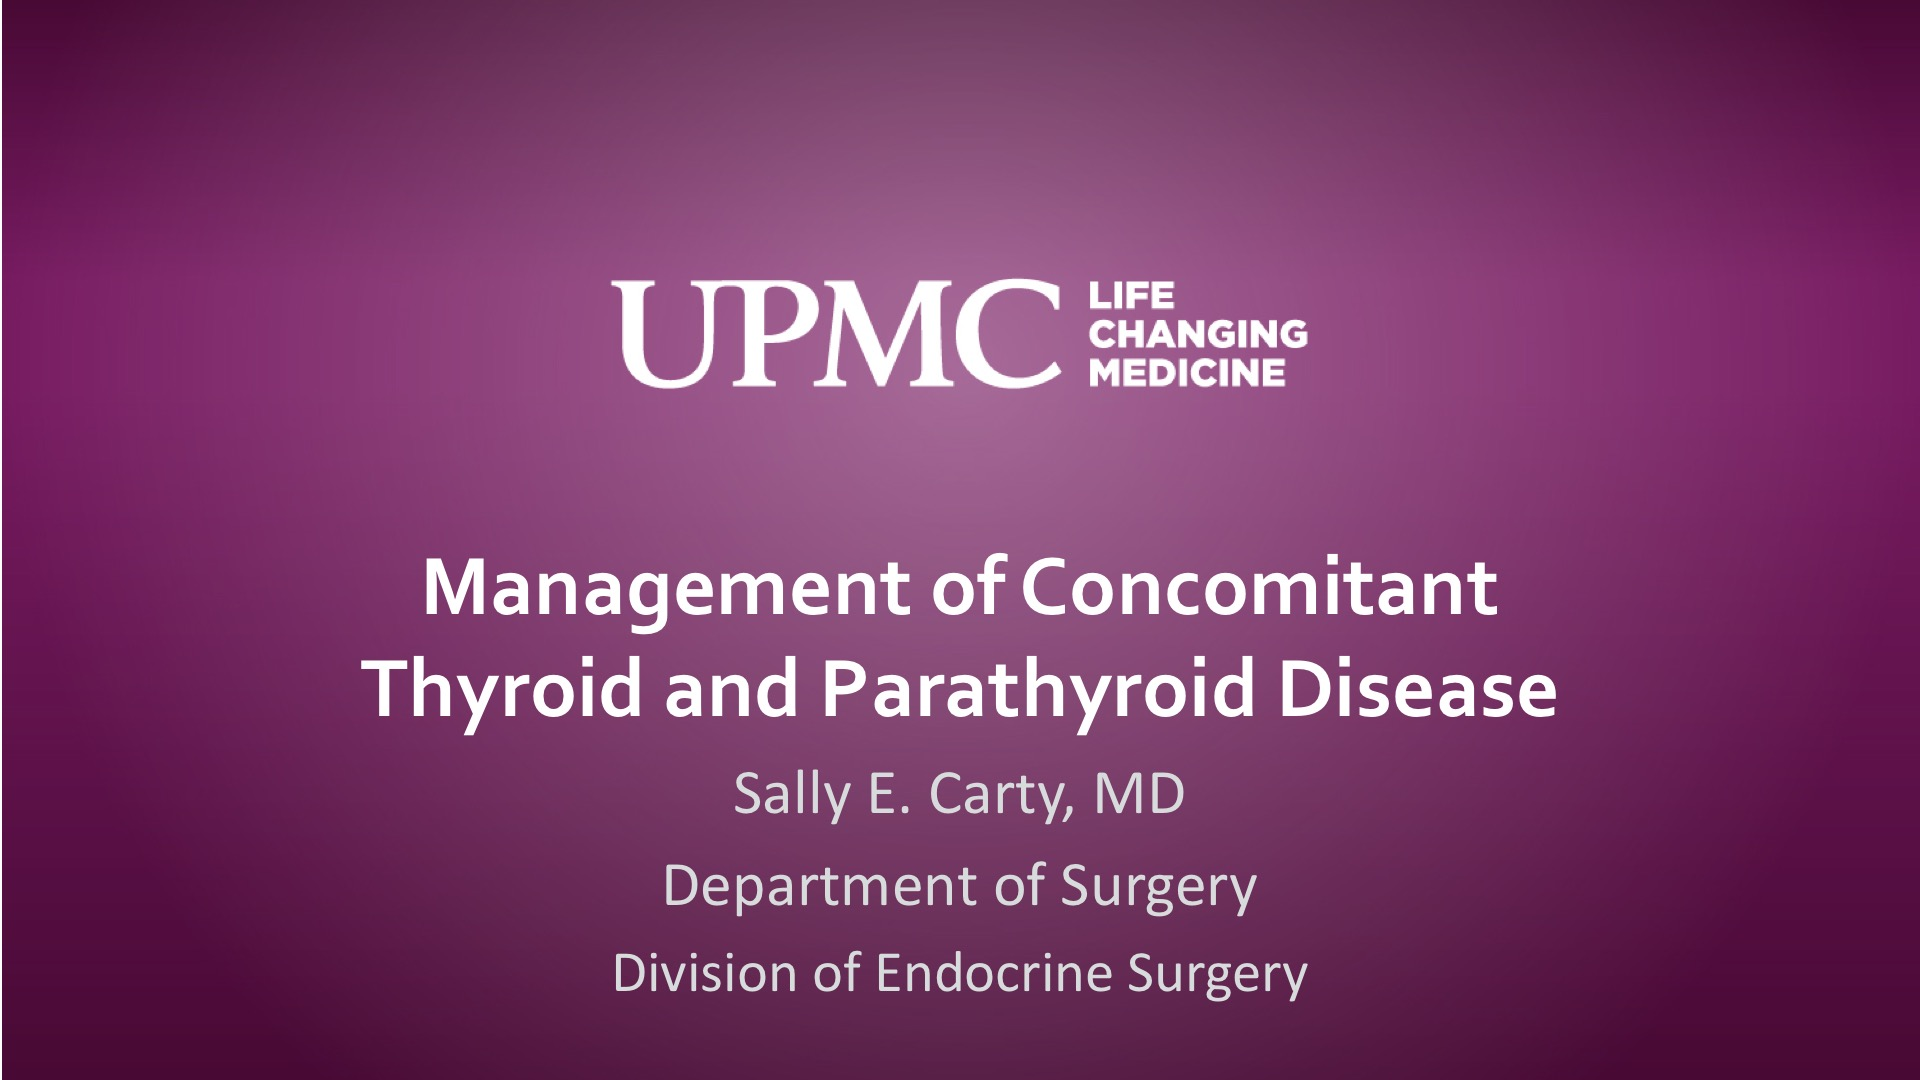 Management Of Concomitant Thyroid And Parathyroid Disease Upmc